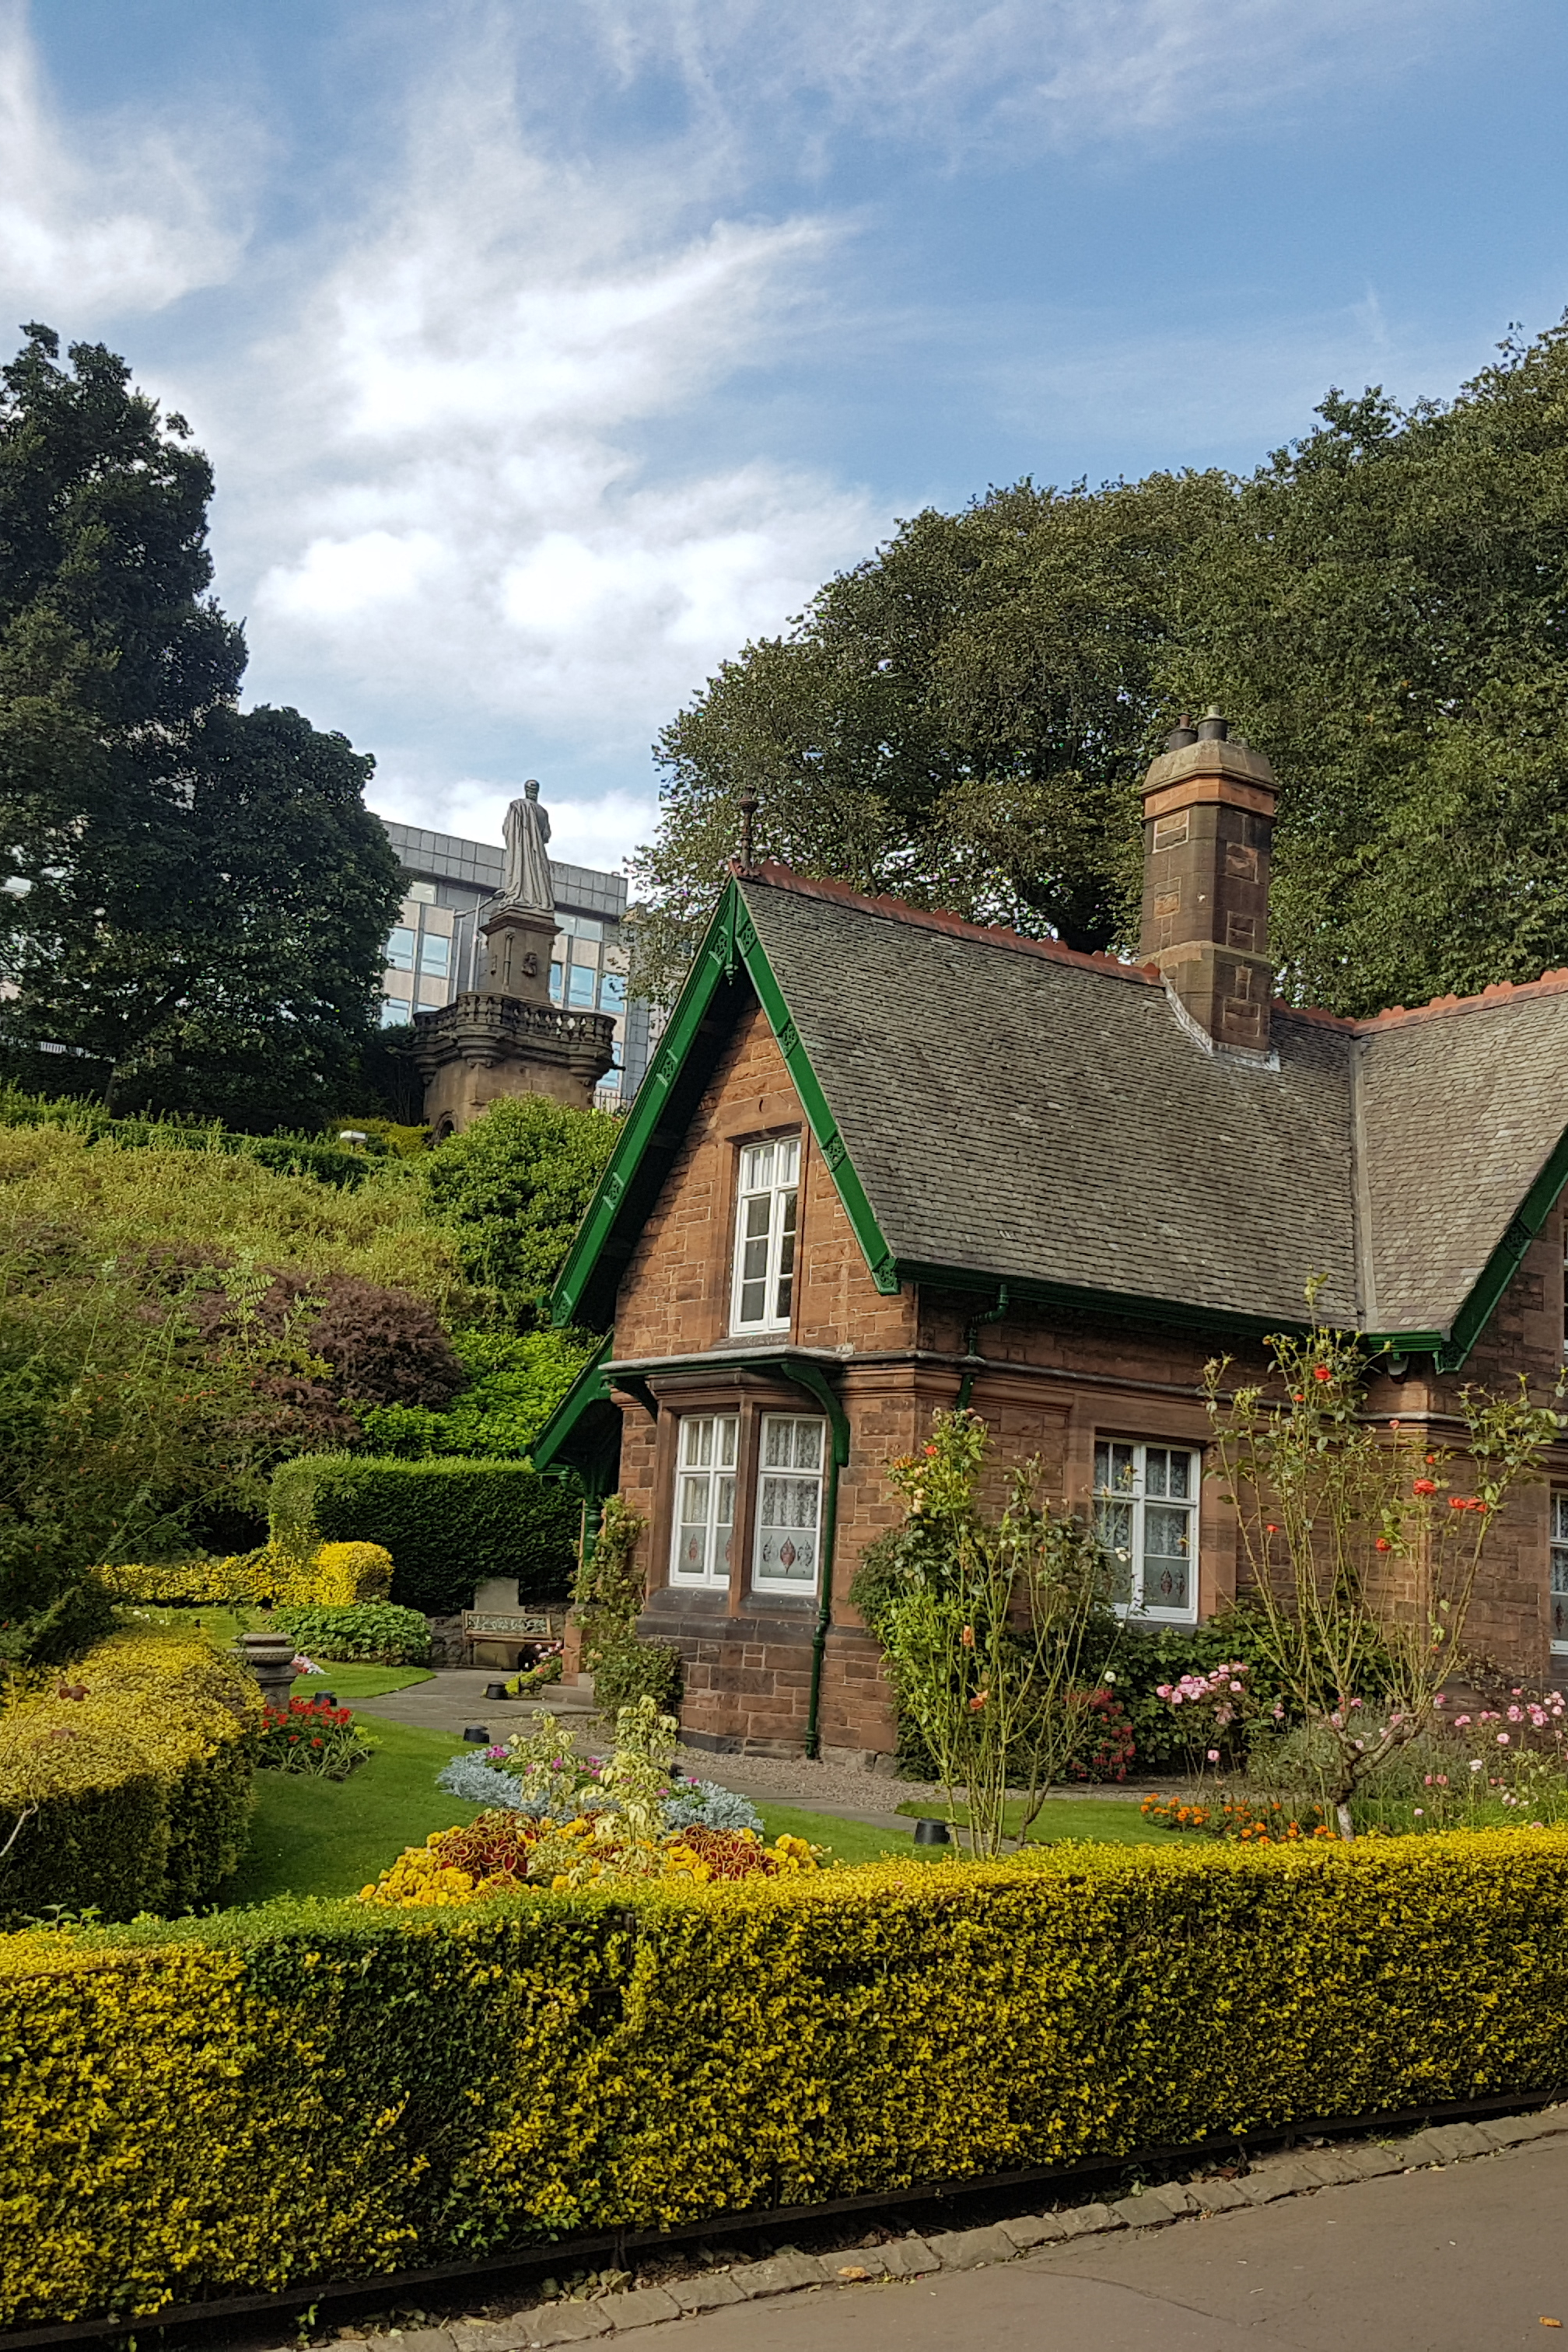 Gardeners Cottage, near our start point